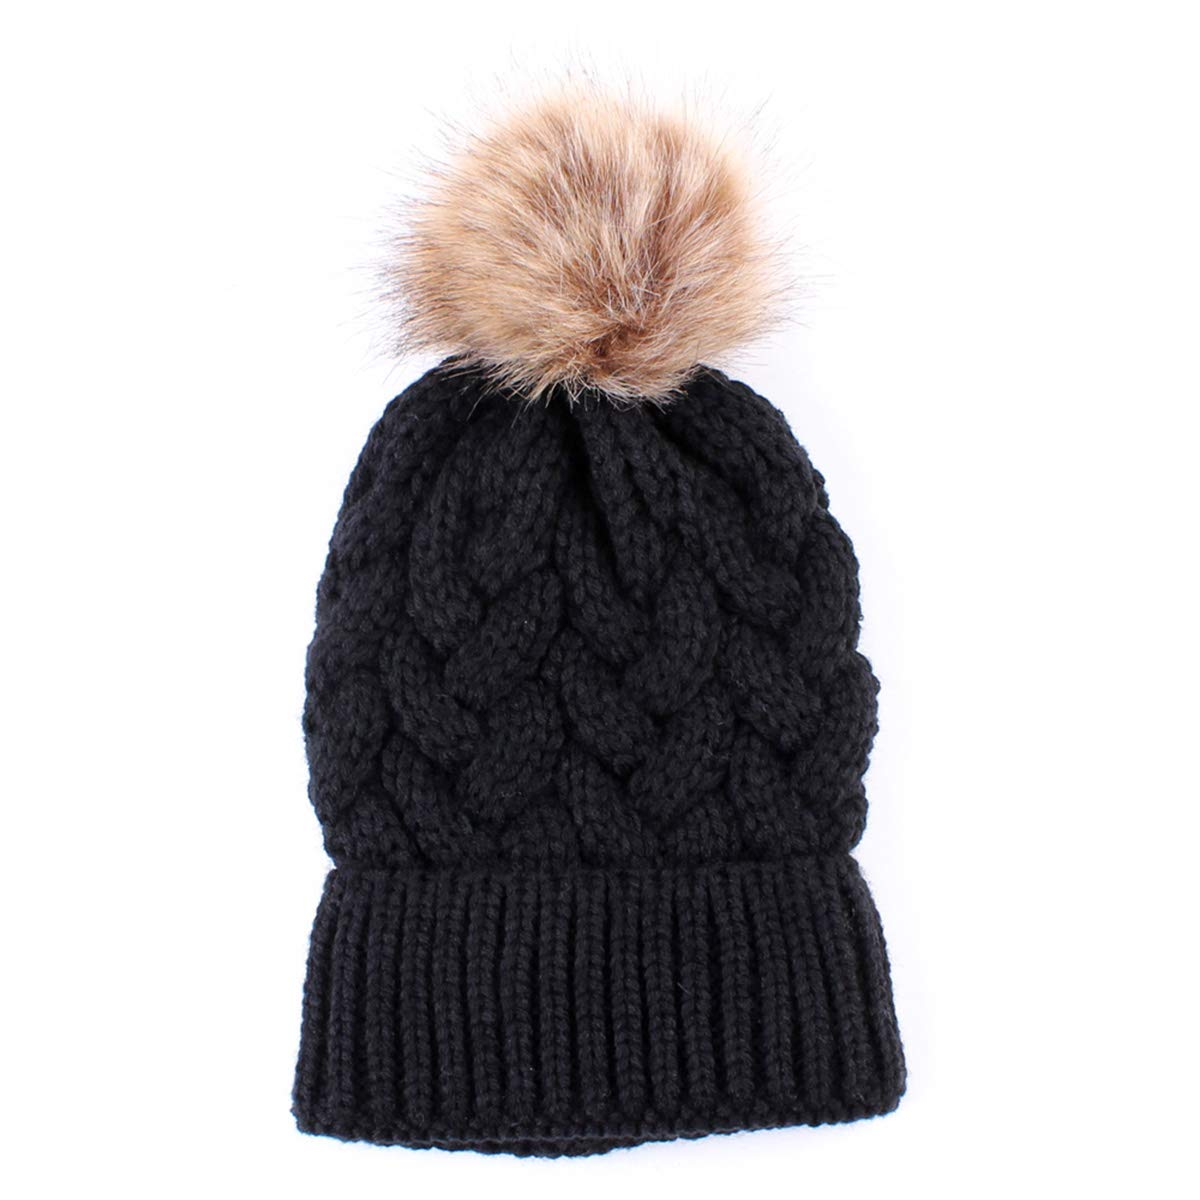 6f918a7b134 2PCS Mother Baby Hat Family Matching Cap Winter Warmer Knit Wool Beanie Ski  Cap (Black)  Amazon.co.uk  Clothing